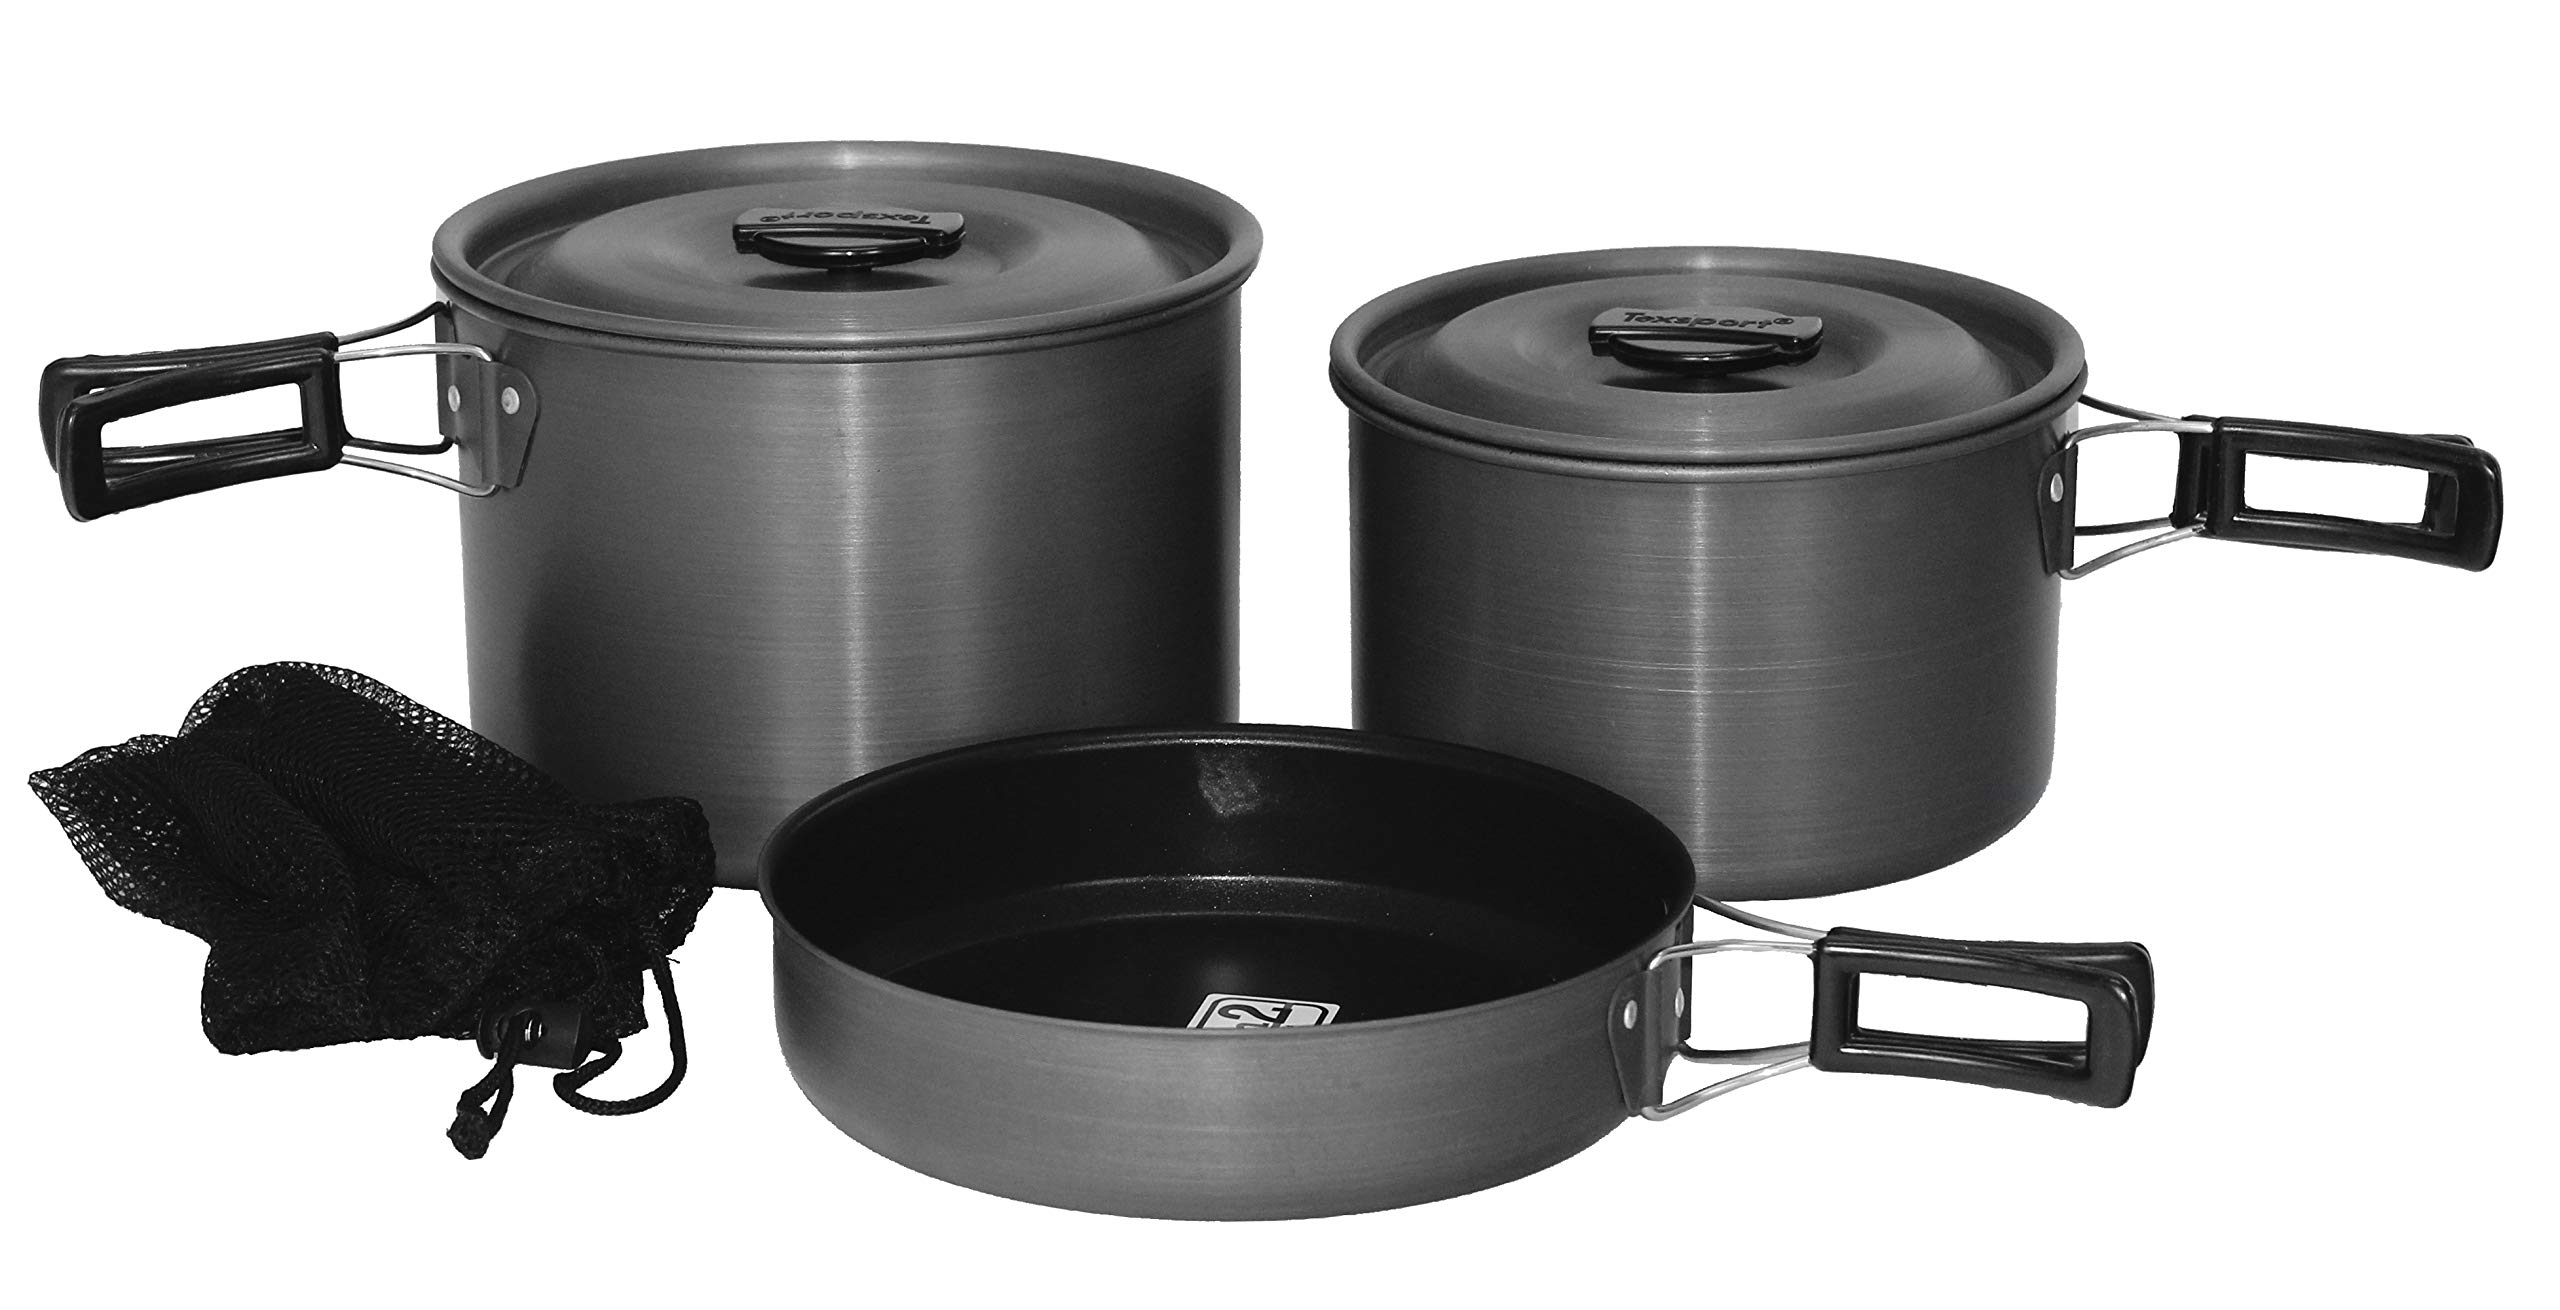 Texsport Trailblazer Black Ice 5 pc Hard Anodized Camping Cookware Outdoor Cook Set with Storage Bag by Texsport